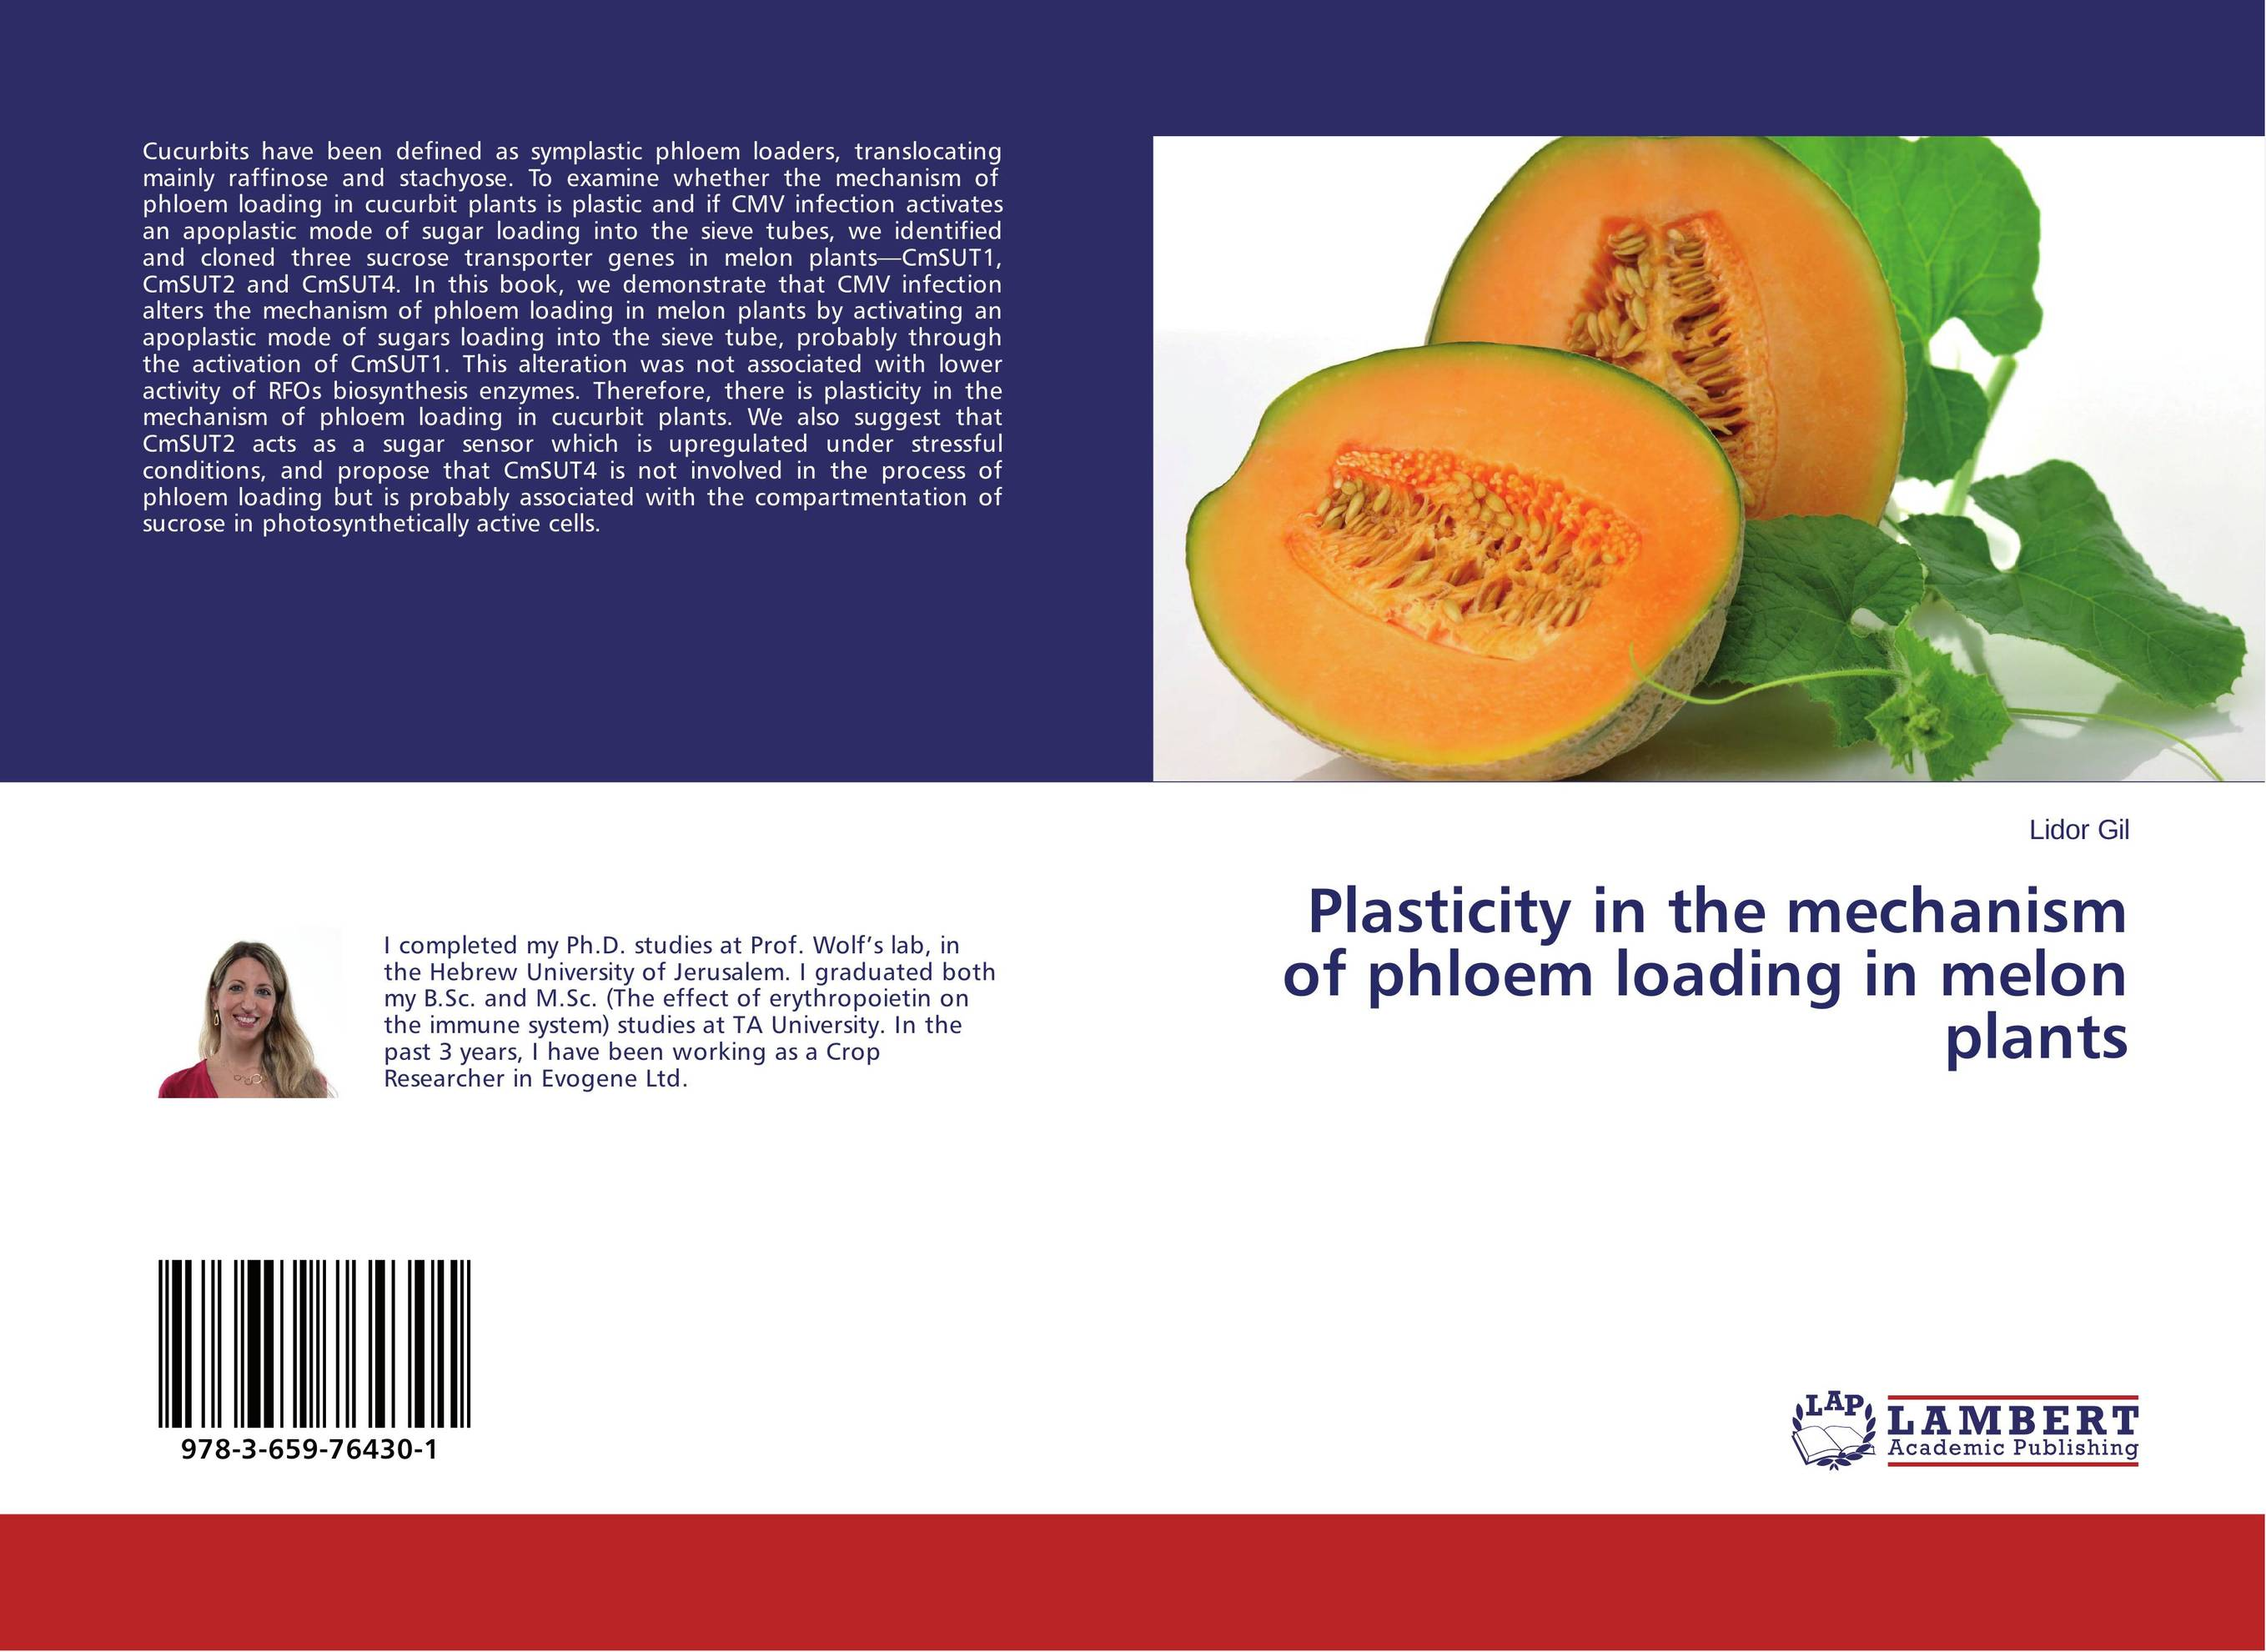 Plasticity in the mechanism of phloem loading in melon plants the viabilities of musyarakah as social protection mechanism